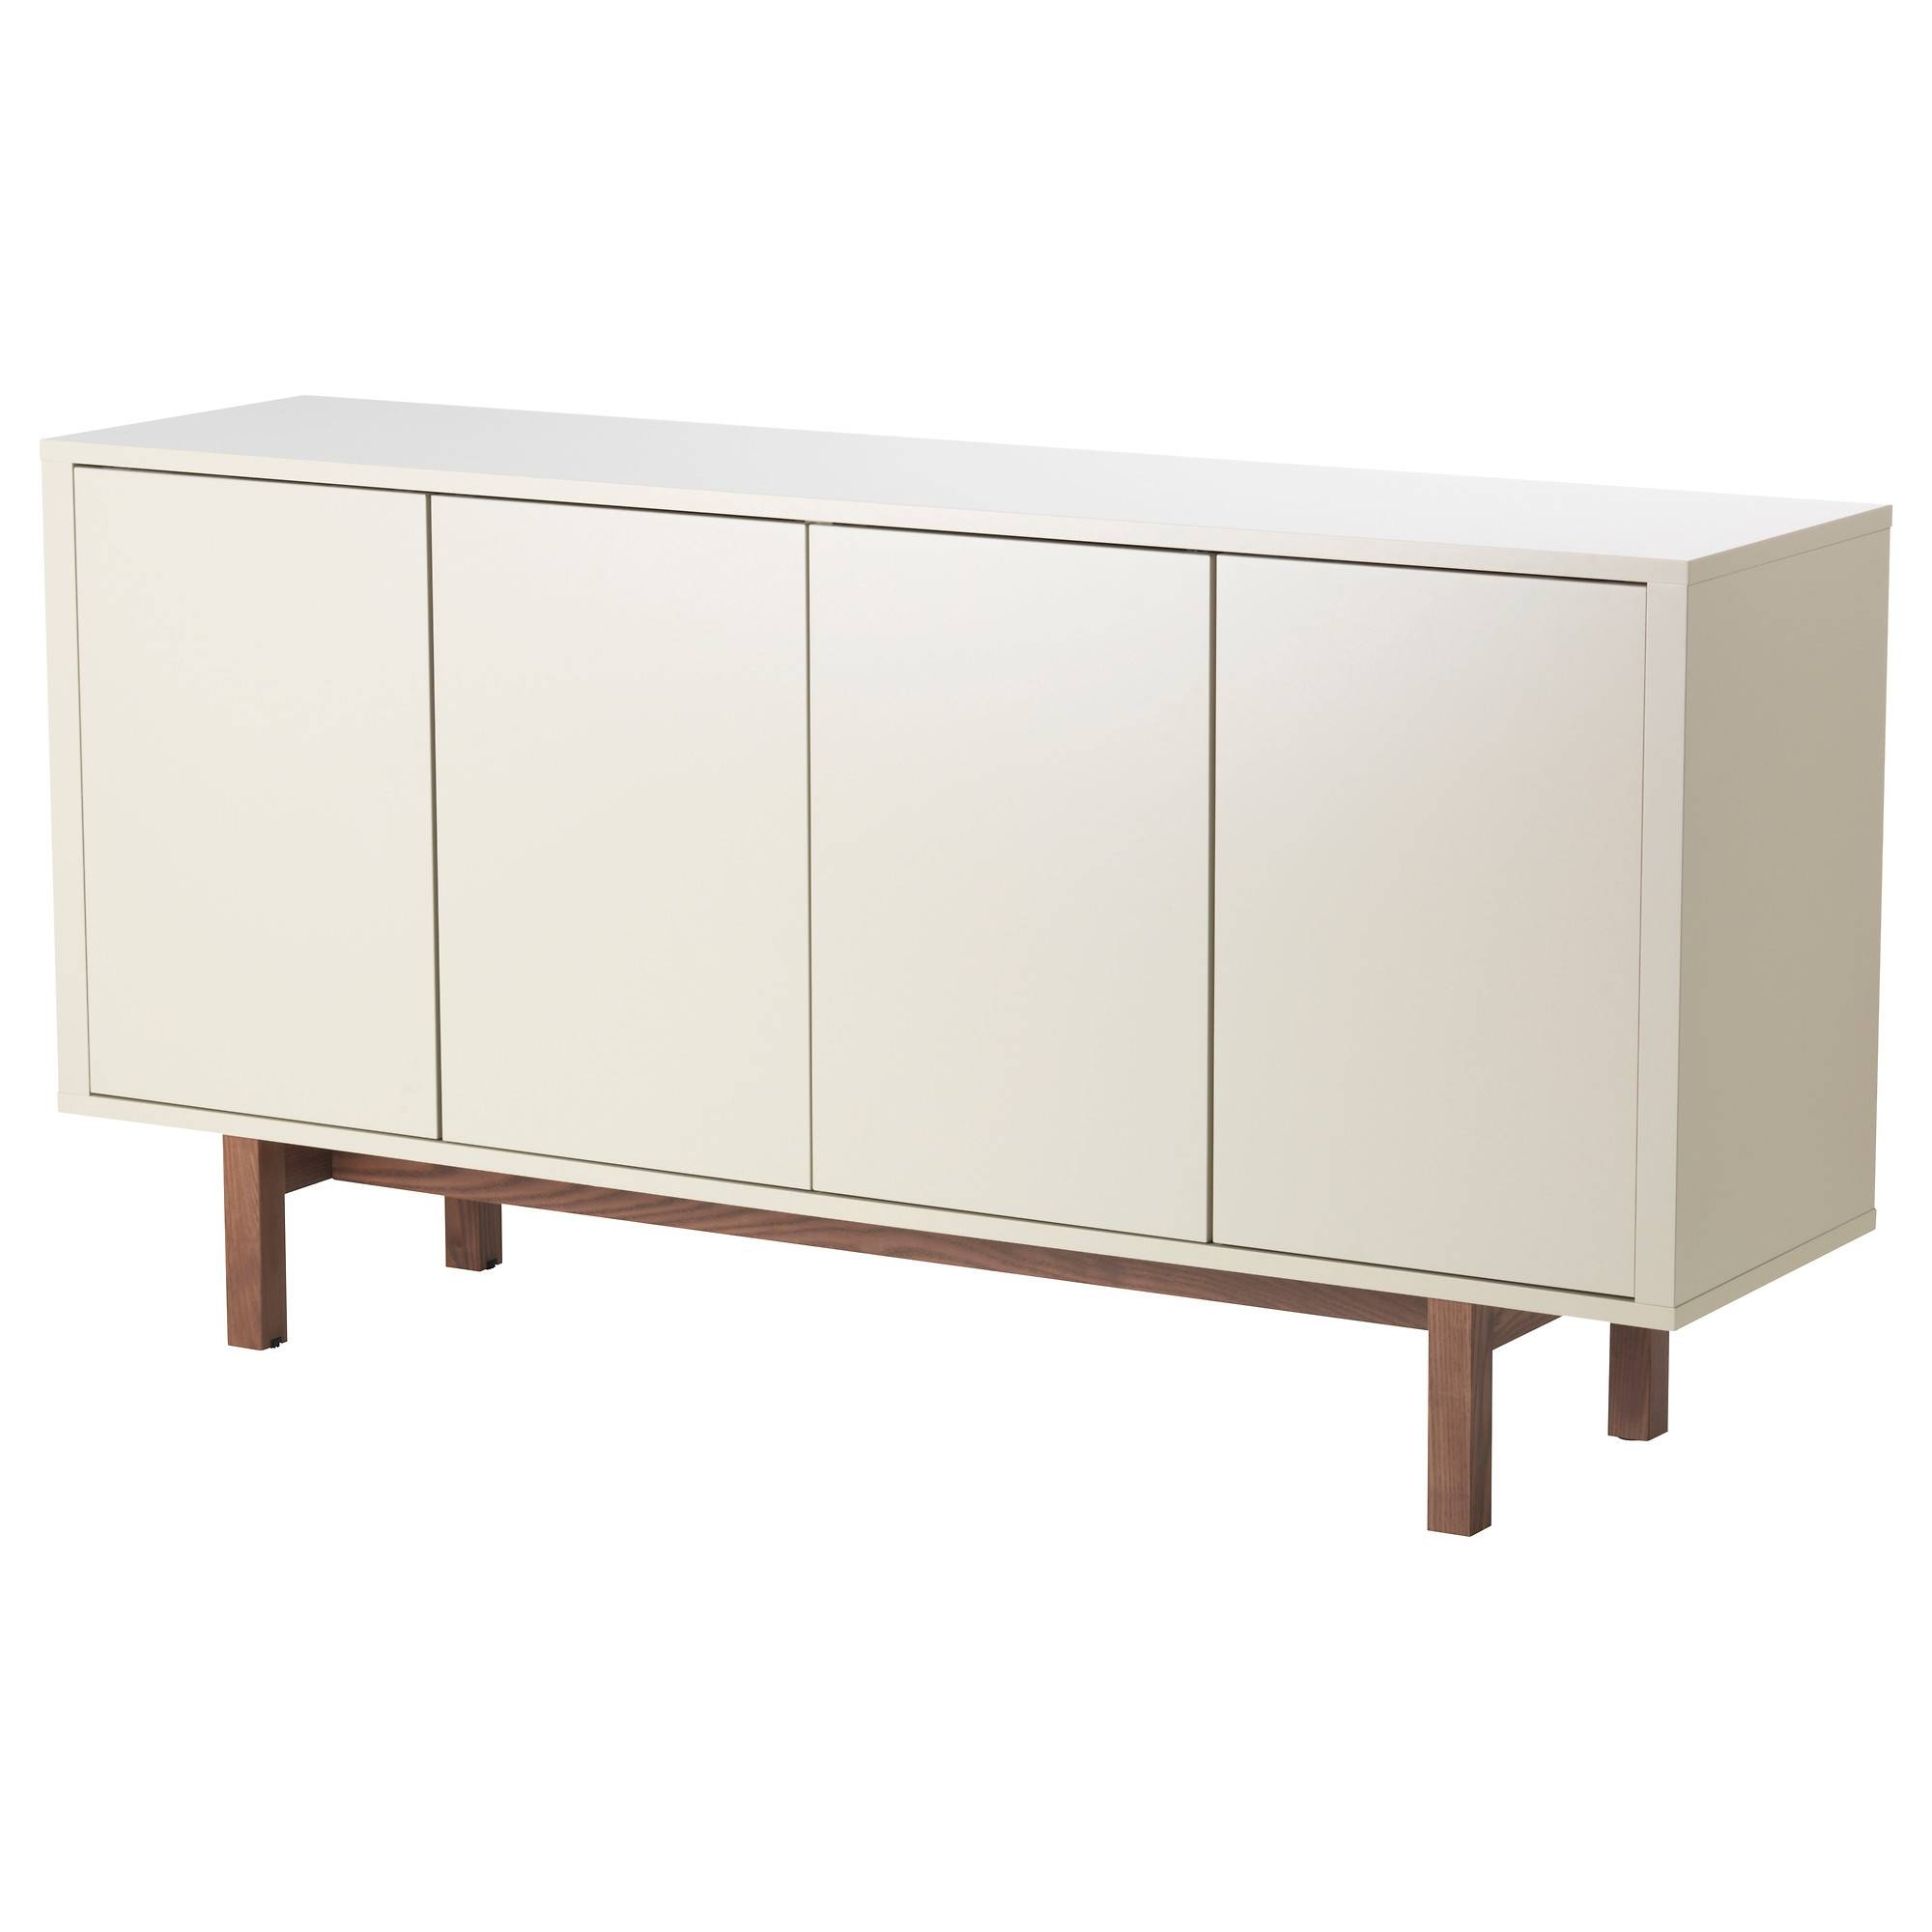 Awesome Ikea Stockholm Sideboard – Bjdgjy Inside Latest Ikea Stockholm Sideboards (#3 of 15)